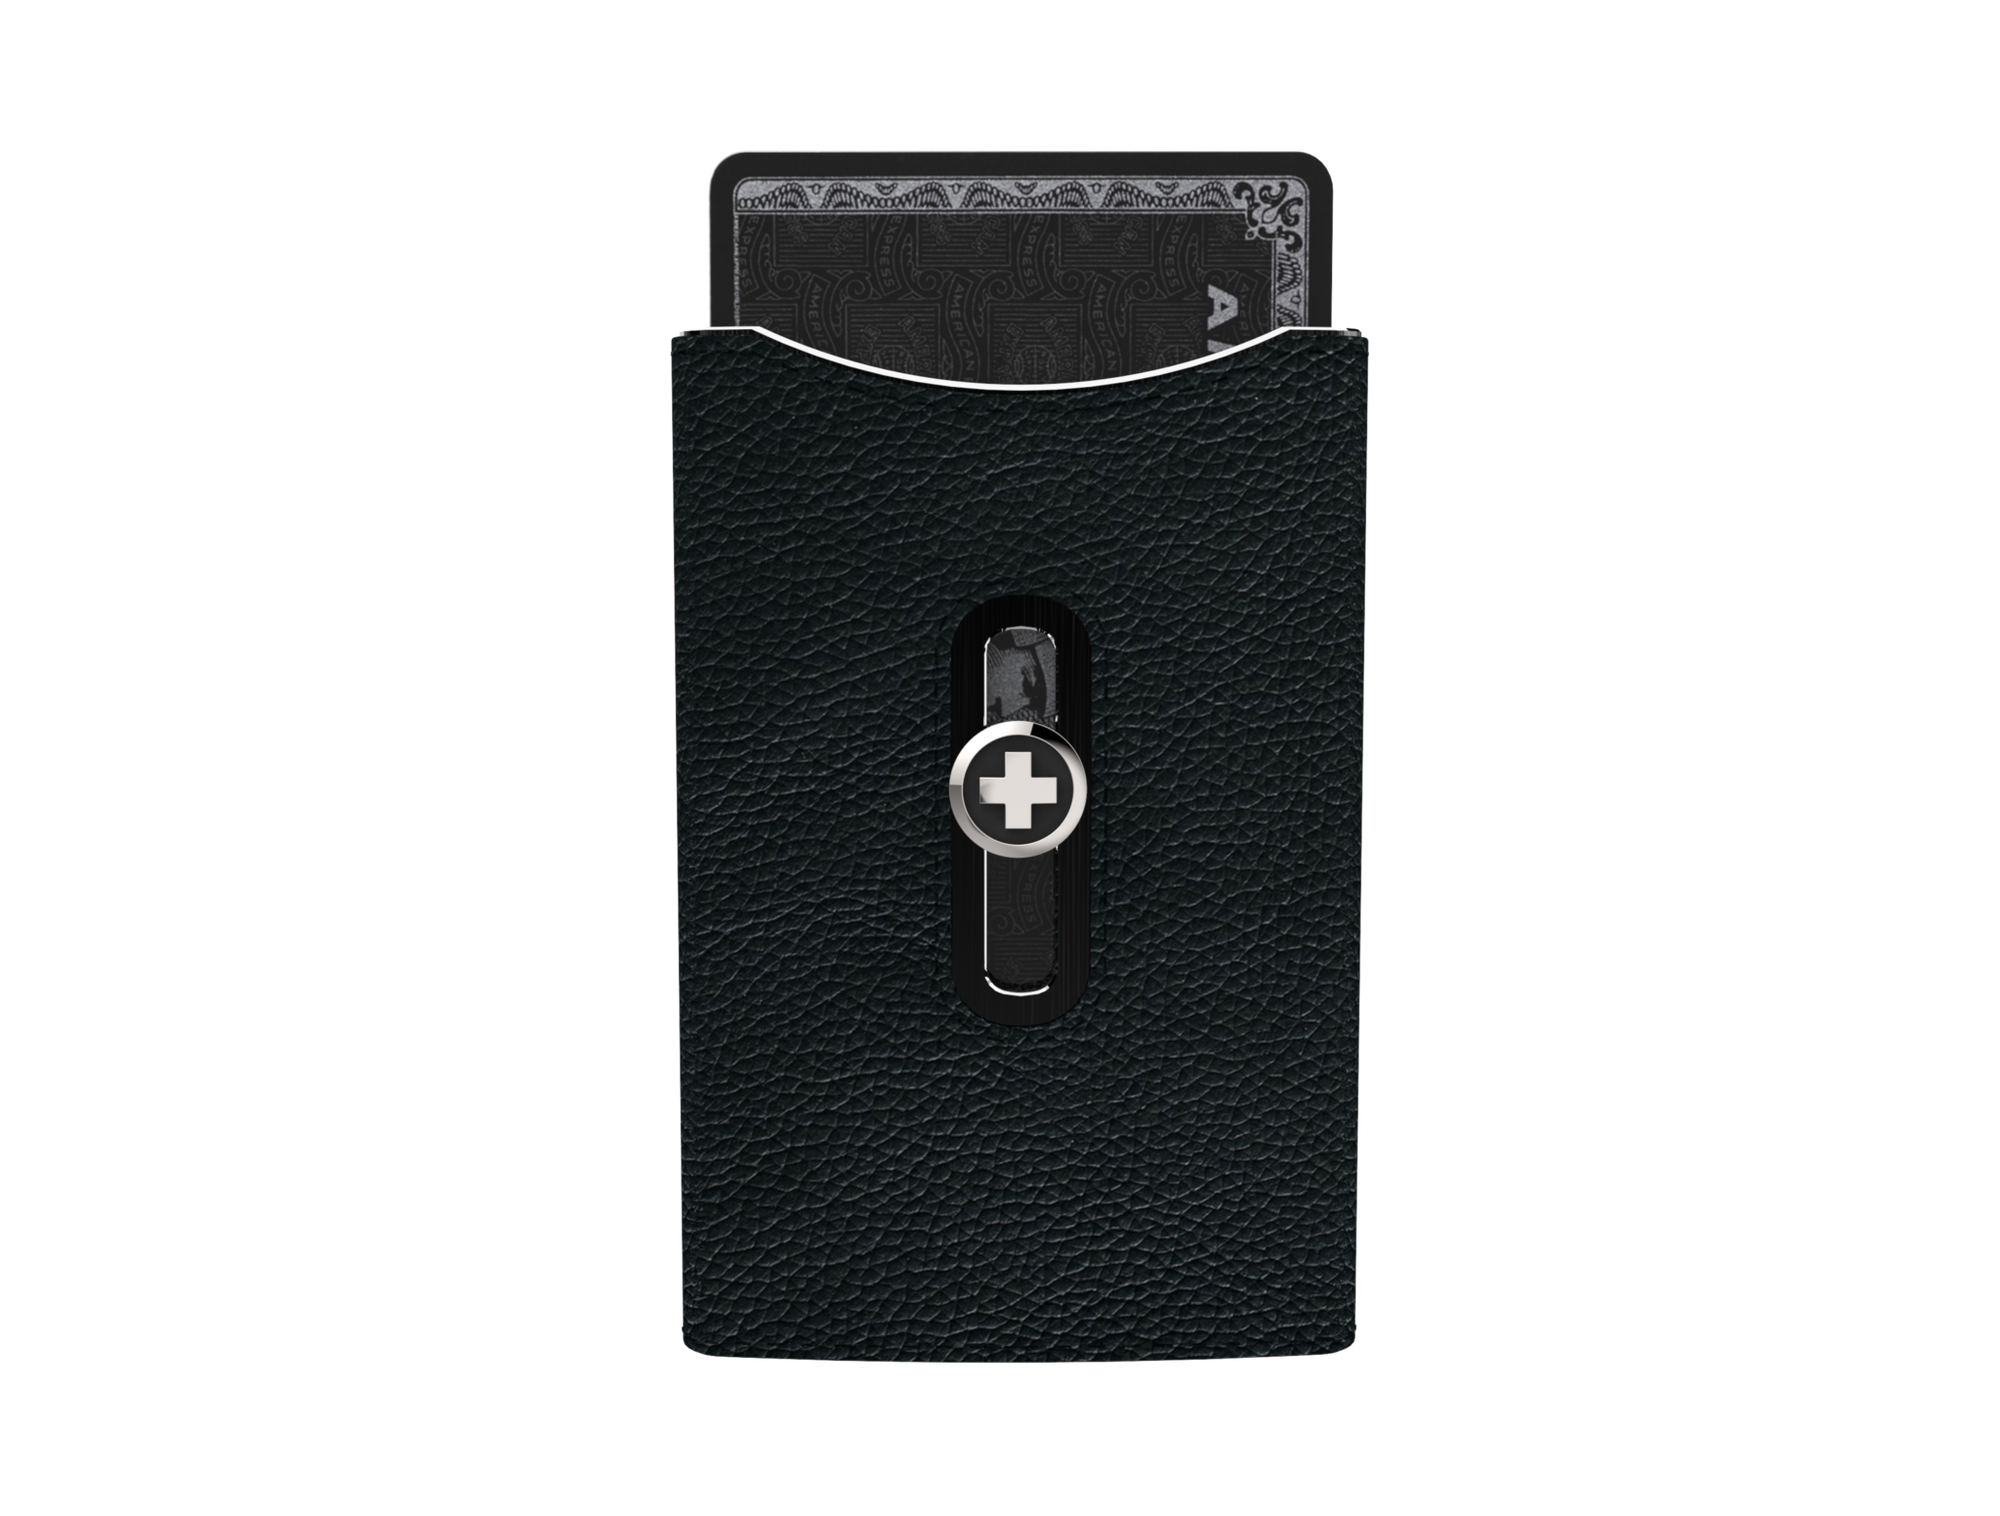 SWISSWALLET SKIN, black on black